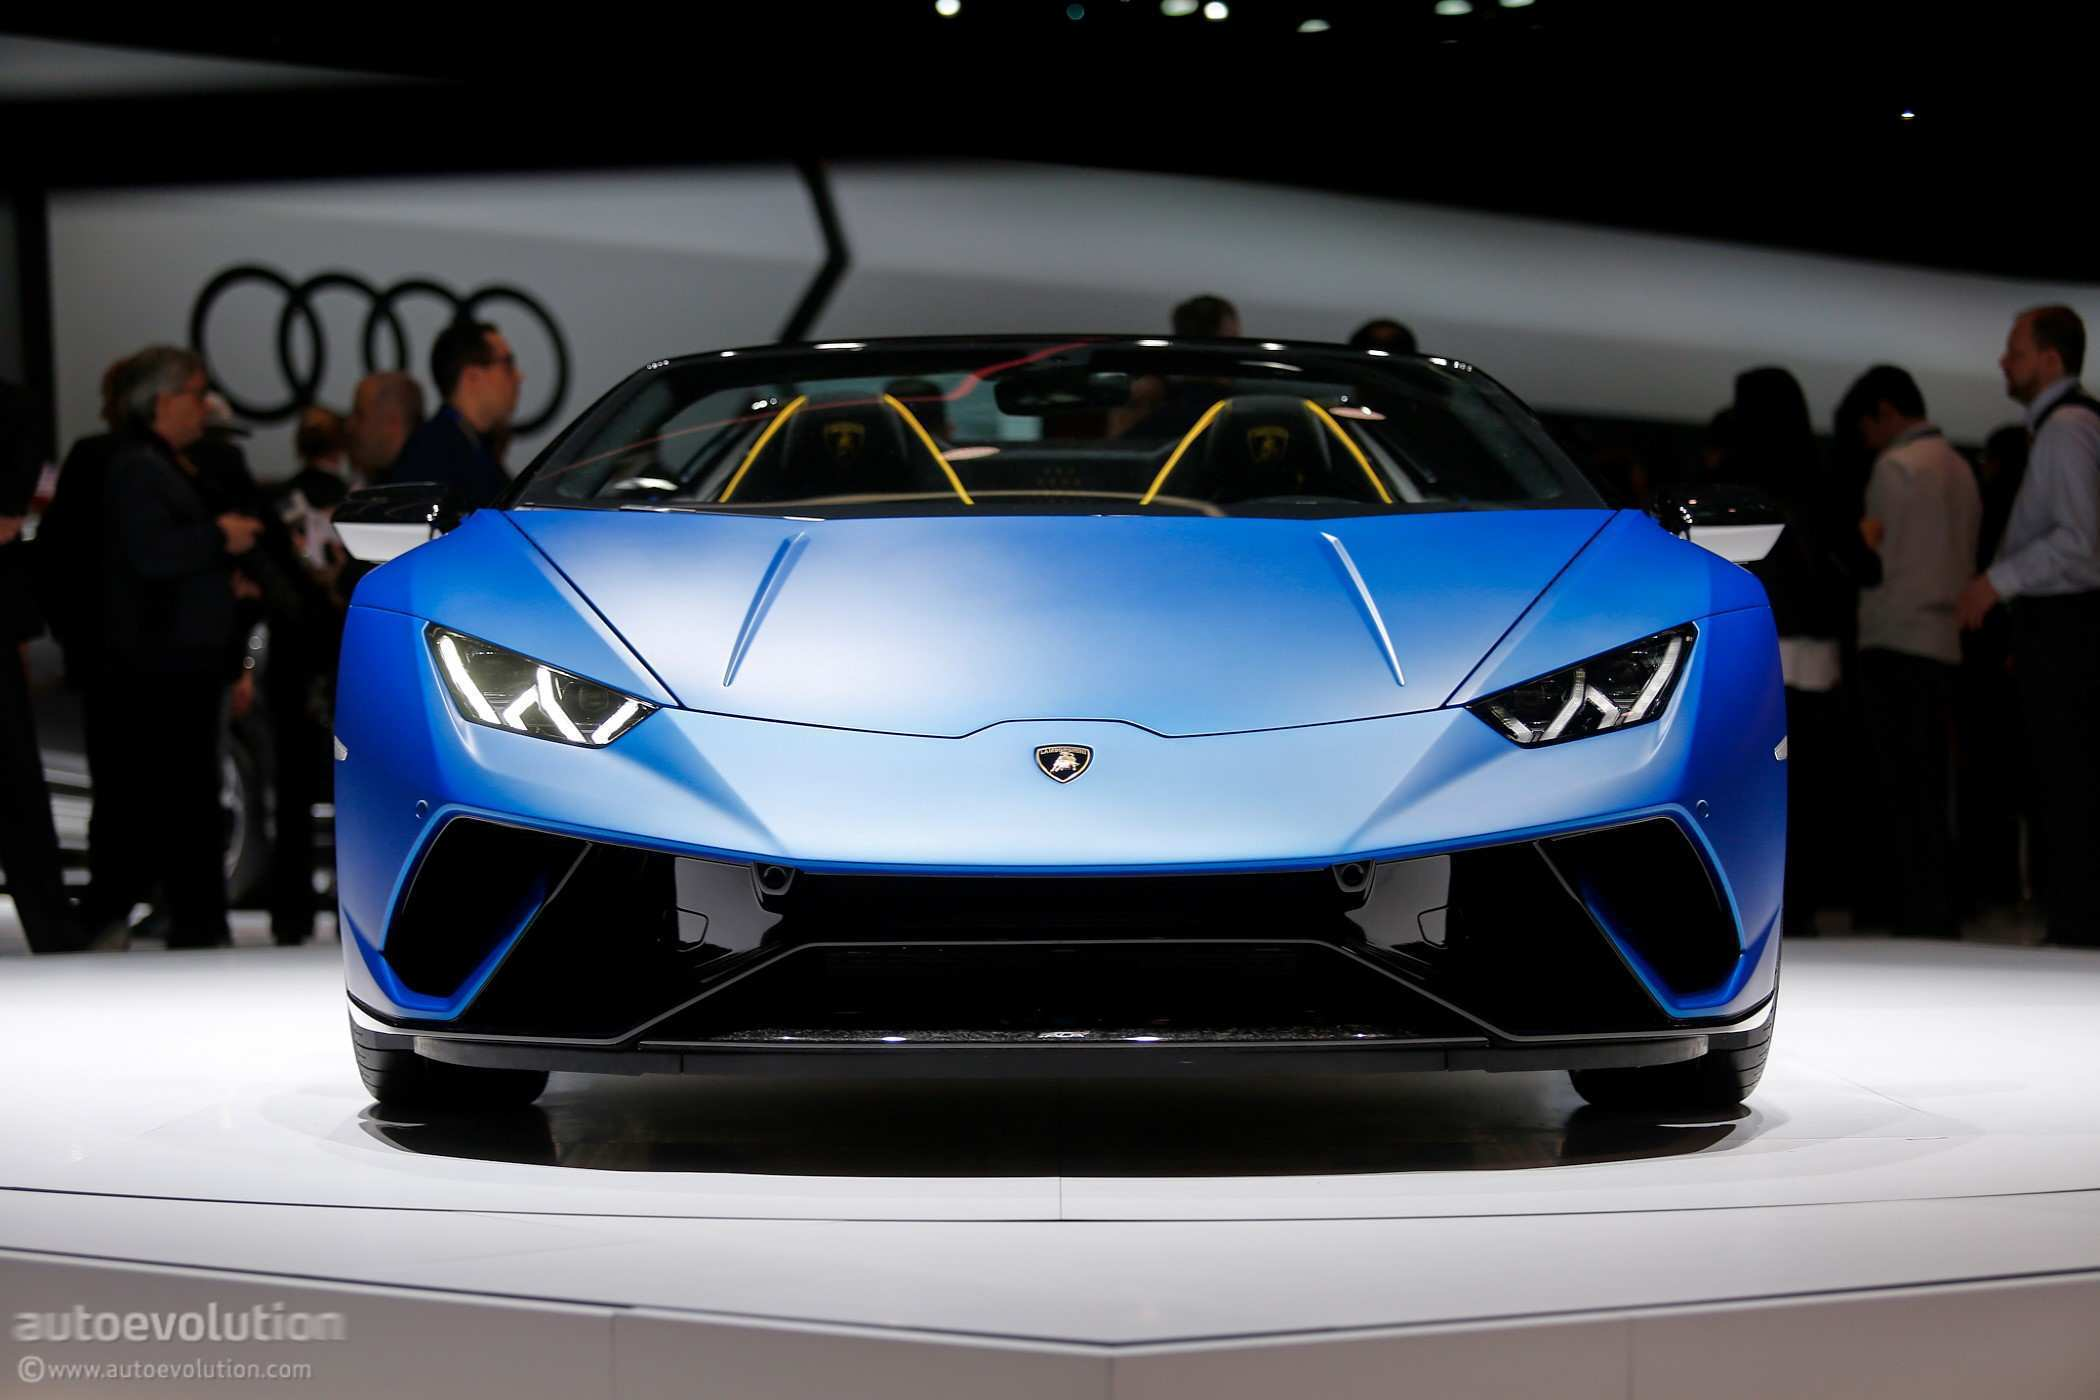 26 Gallery of 2019 Lamborghini Performante Exterior and Interior with 2019 Lamborghini Performante